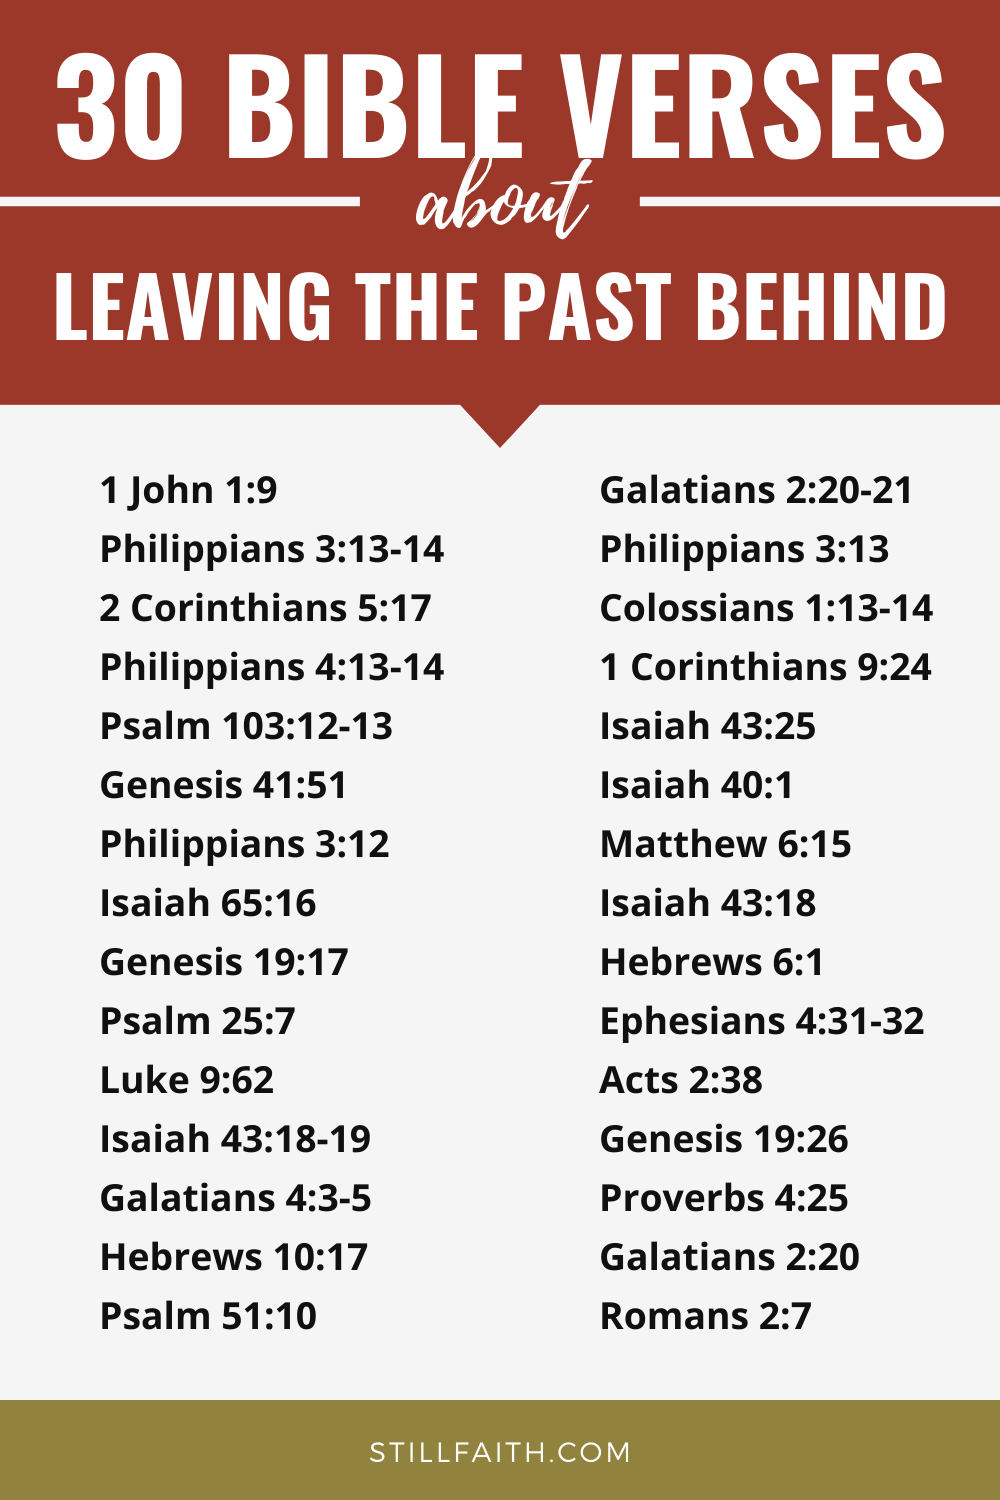 102 Bible Verses about Leaving the Past Behind